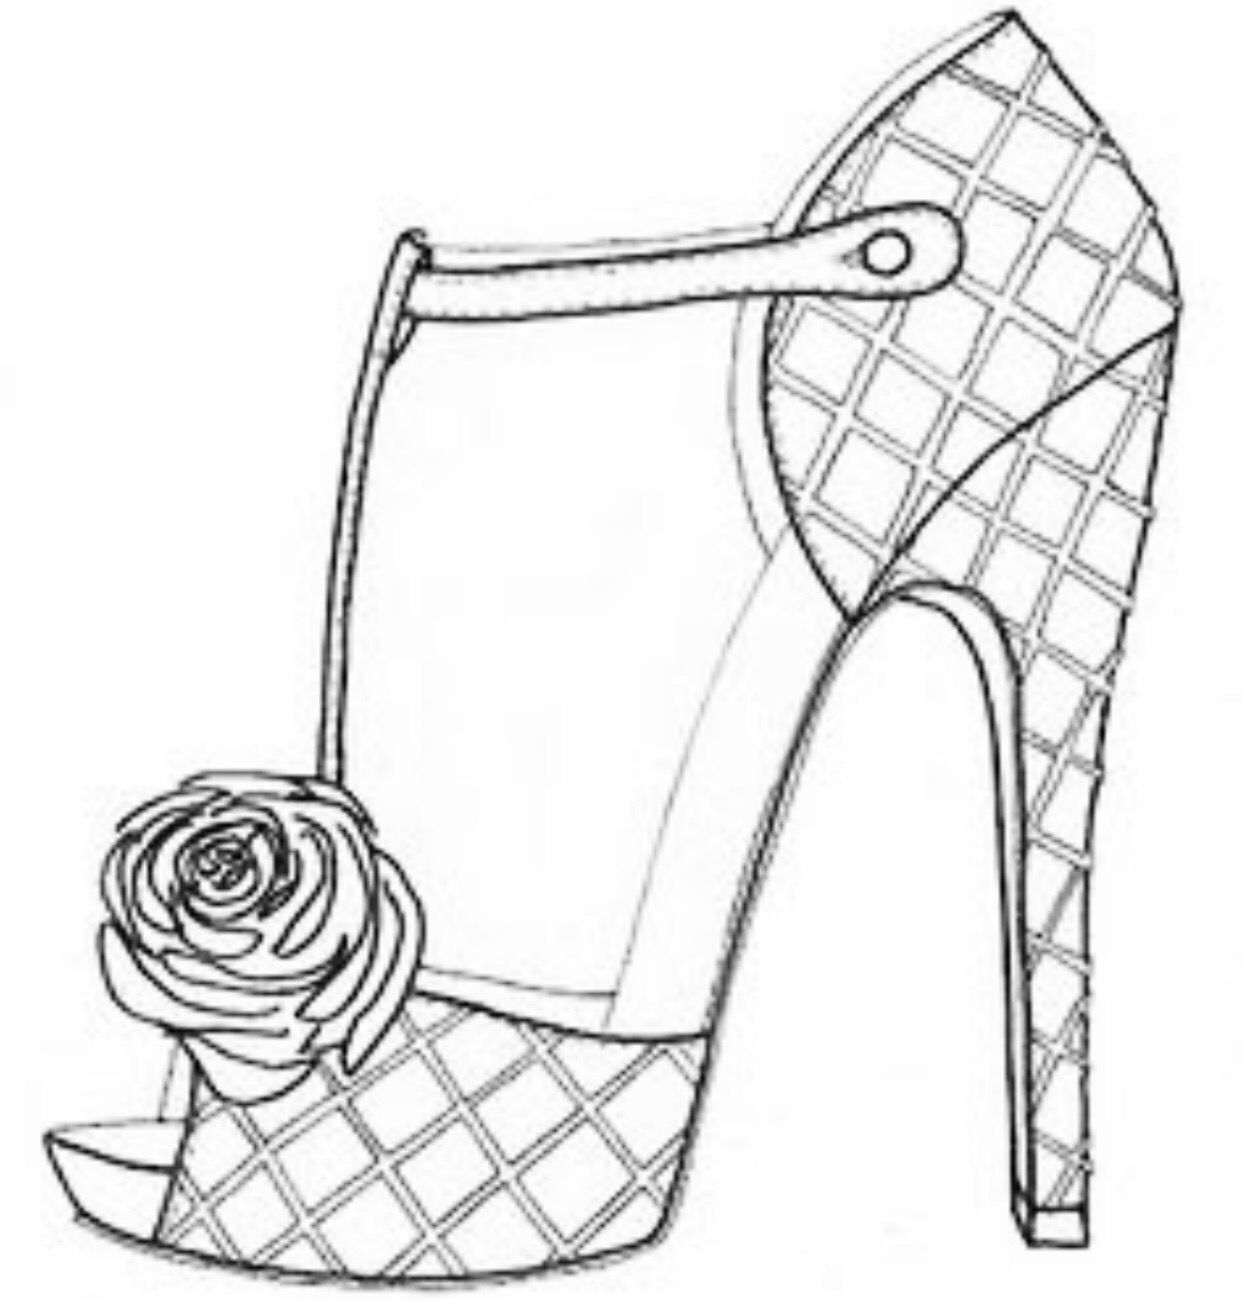 Pin by SoulBearingQuotes on Color My World | Shoe design ...